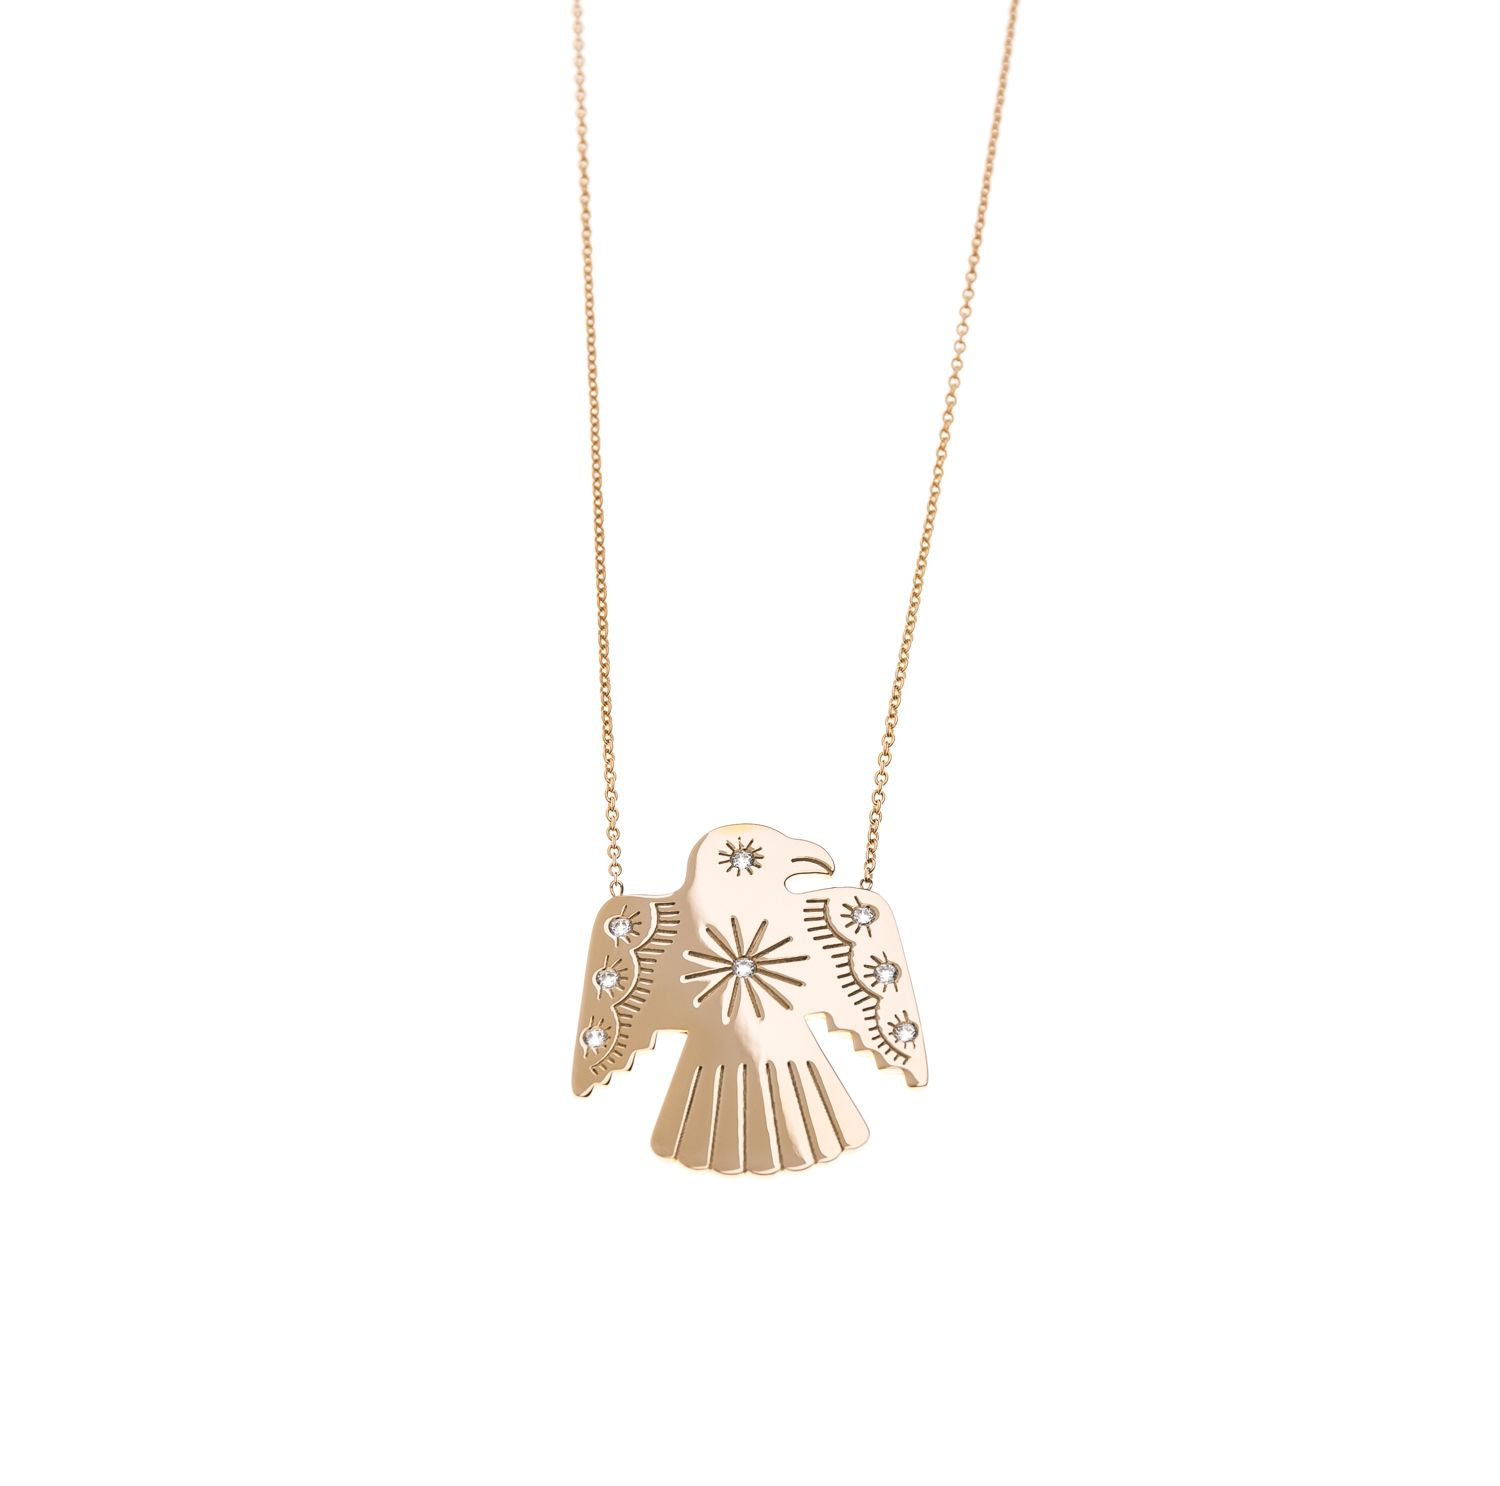 Avinas Jewelry Collection 2016 - Dove necklace yellow gold plated - Cute dove necklace